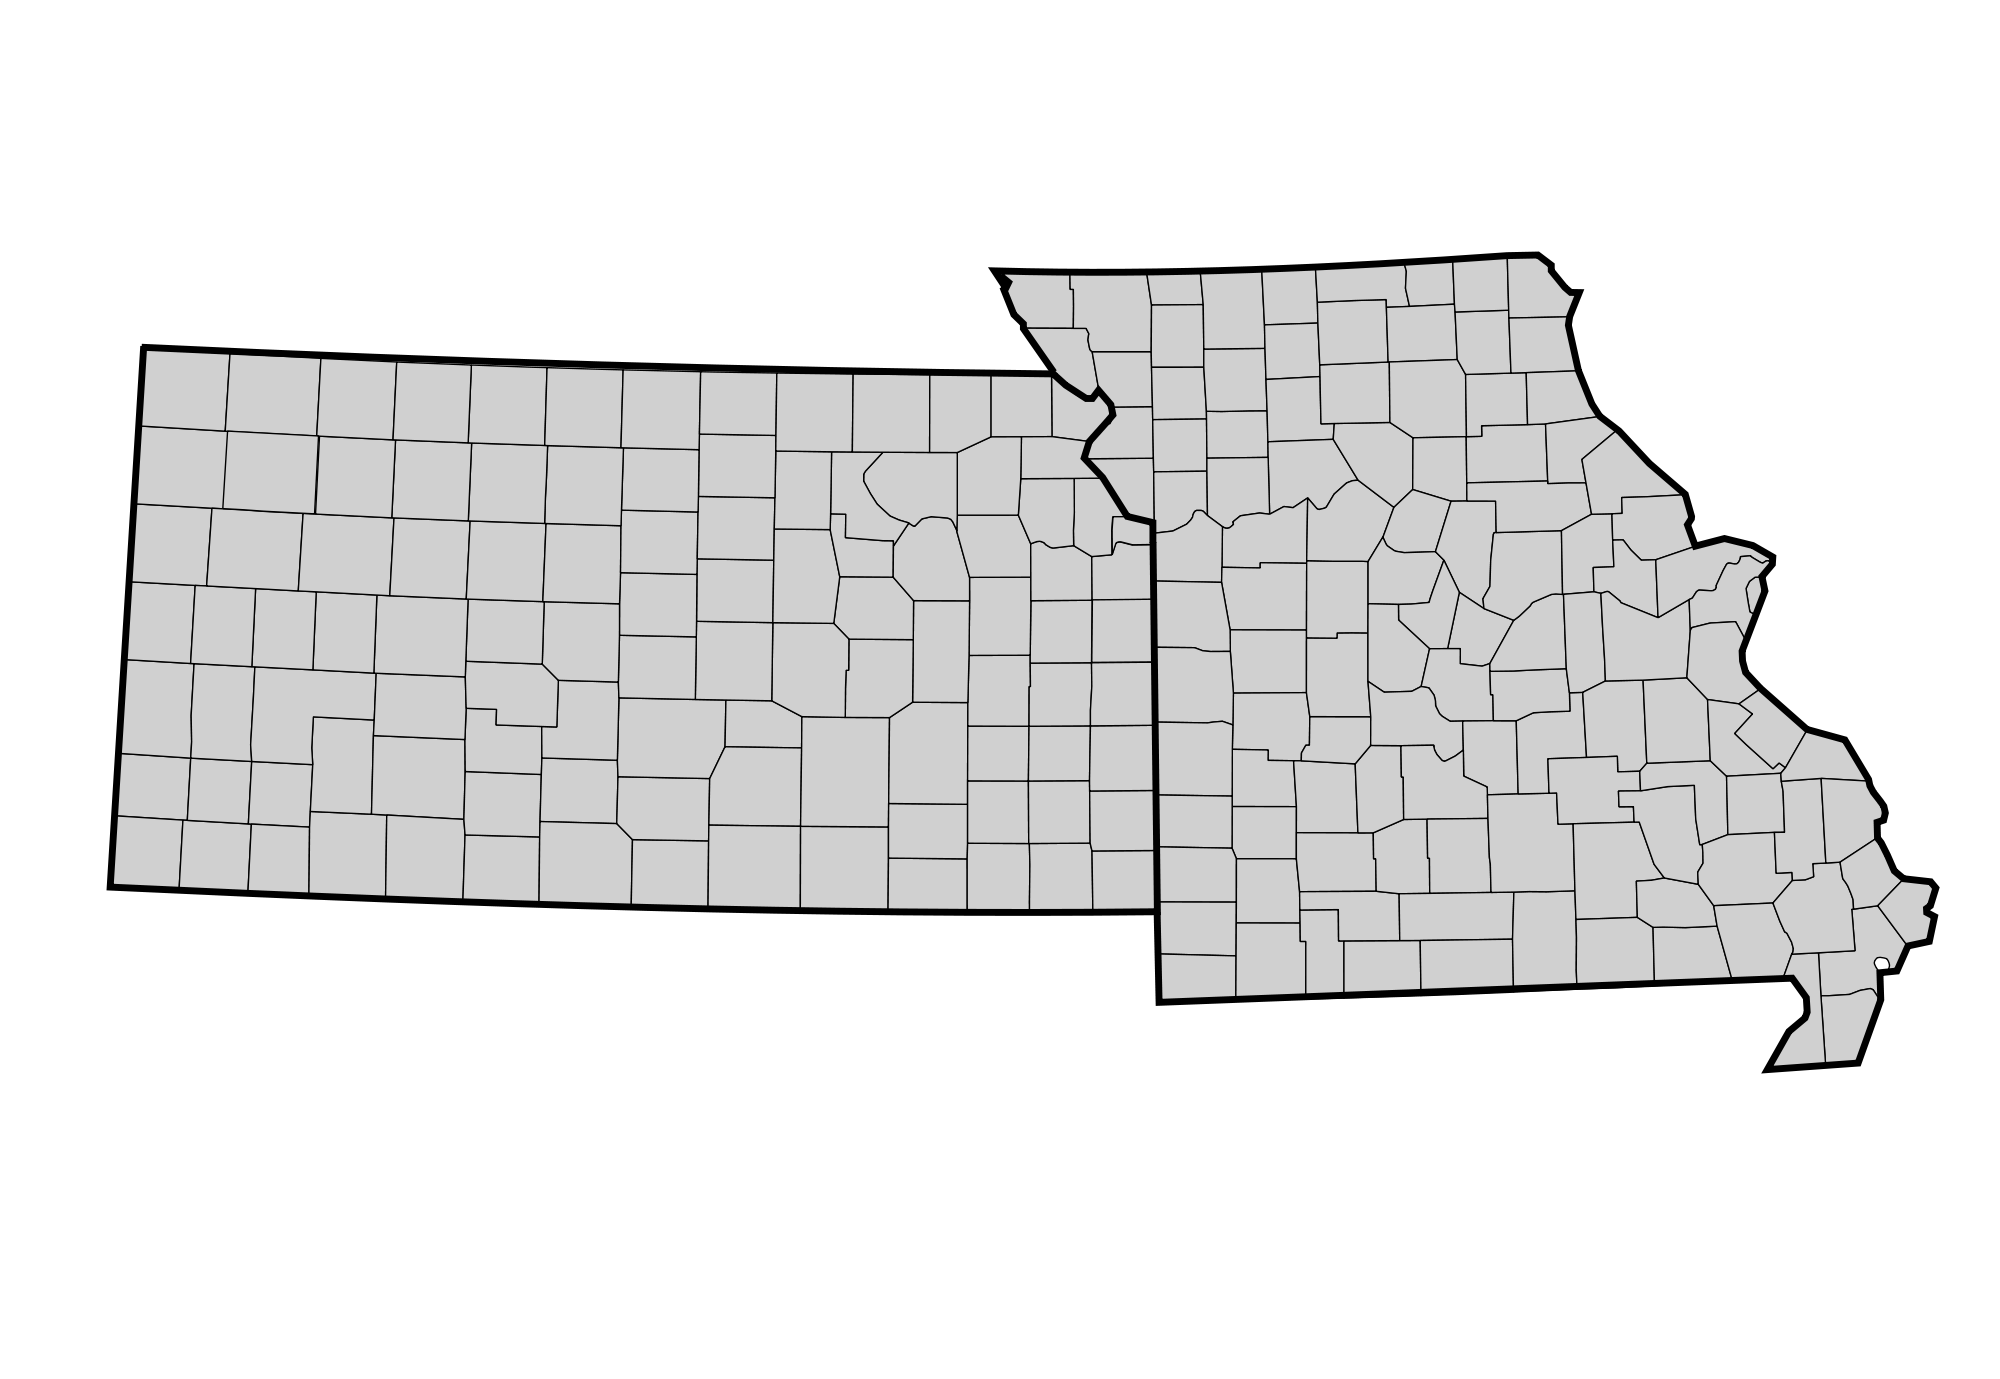 Missouri state outline png. File ks mo county